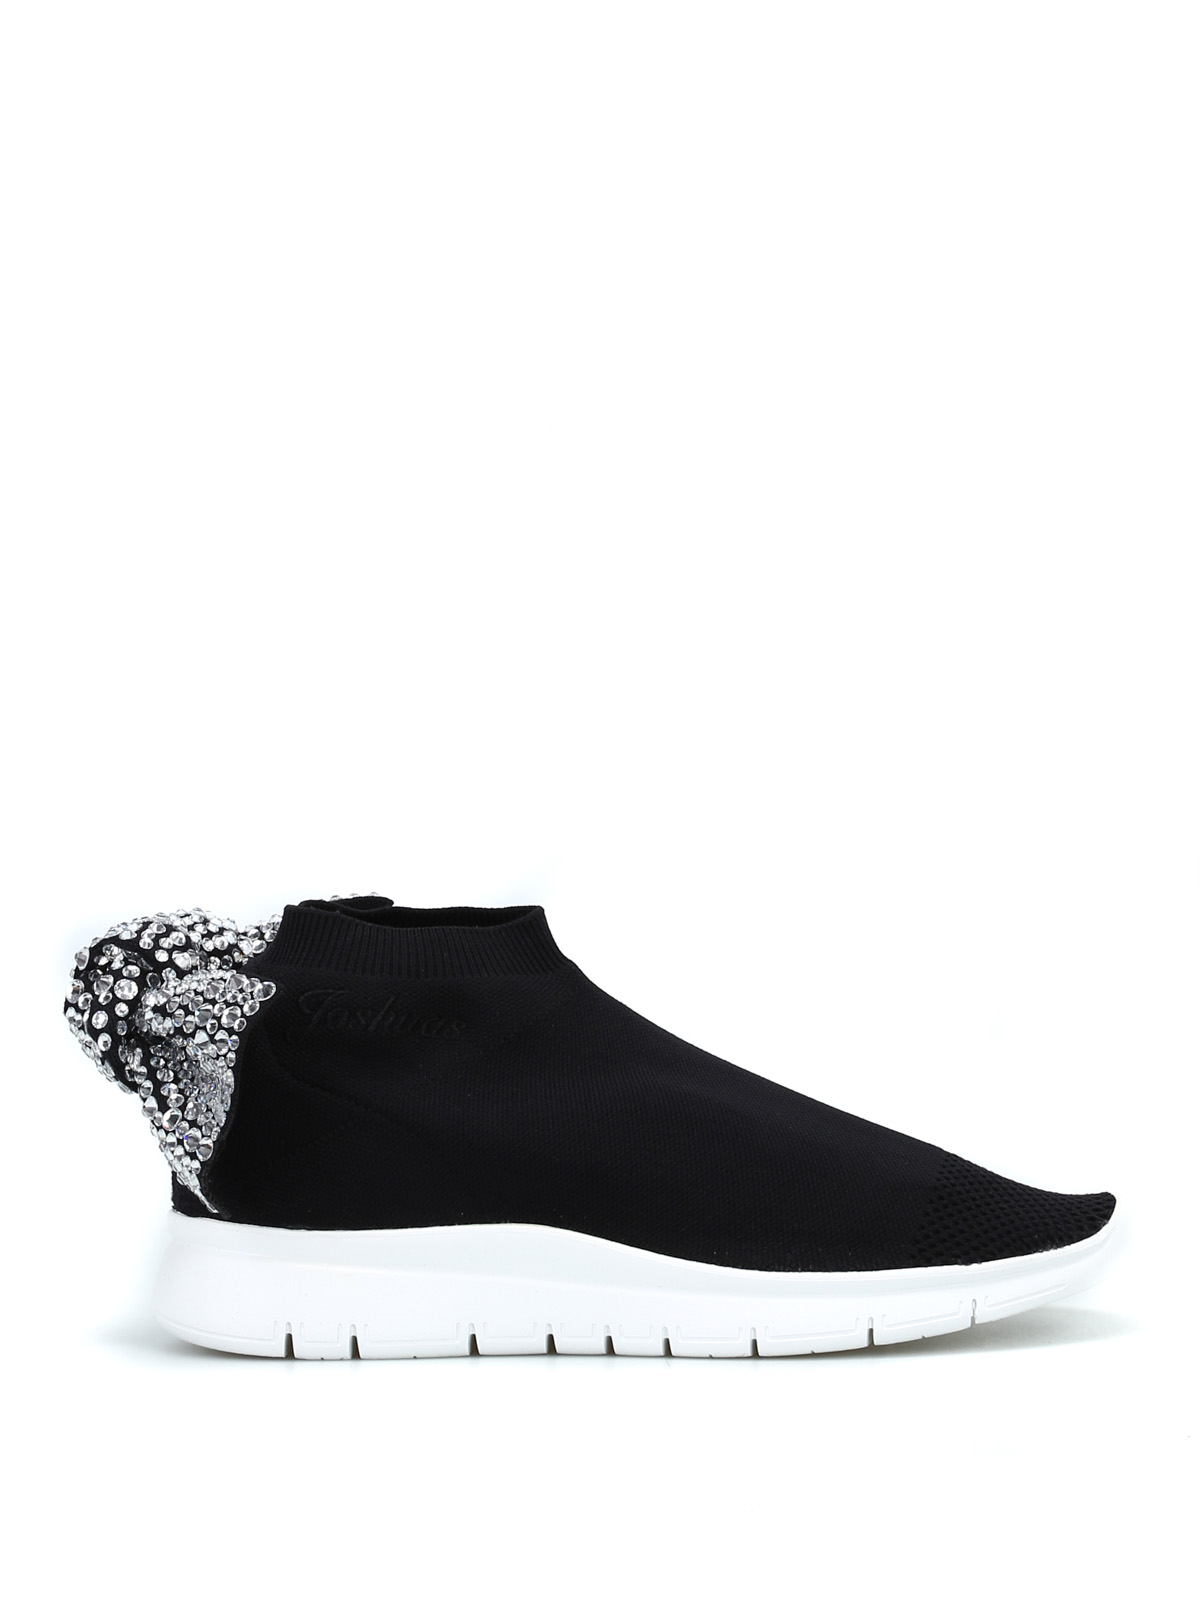 buy cheap Inexpensive Joshua Sanders Black Crystal Bow Sock Sneakers choice free shipping perfect extremely sale online 8FHQkw